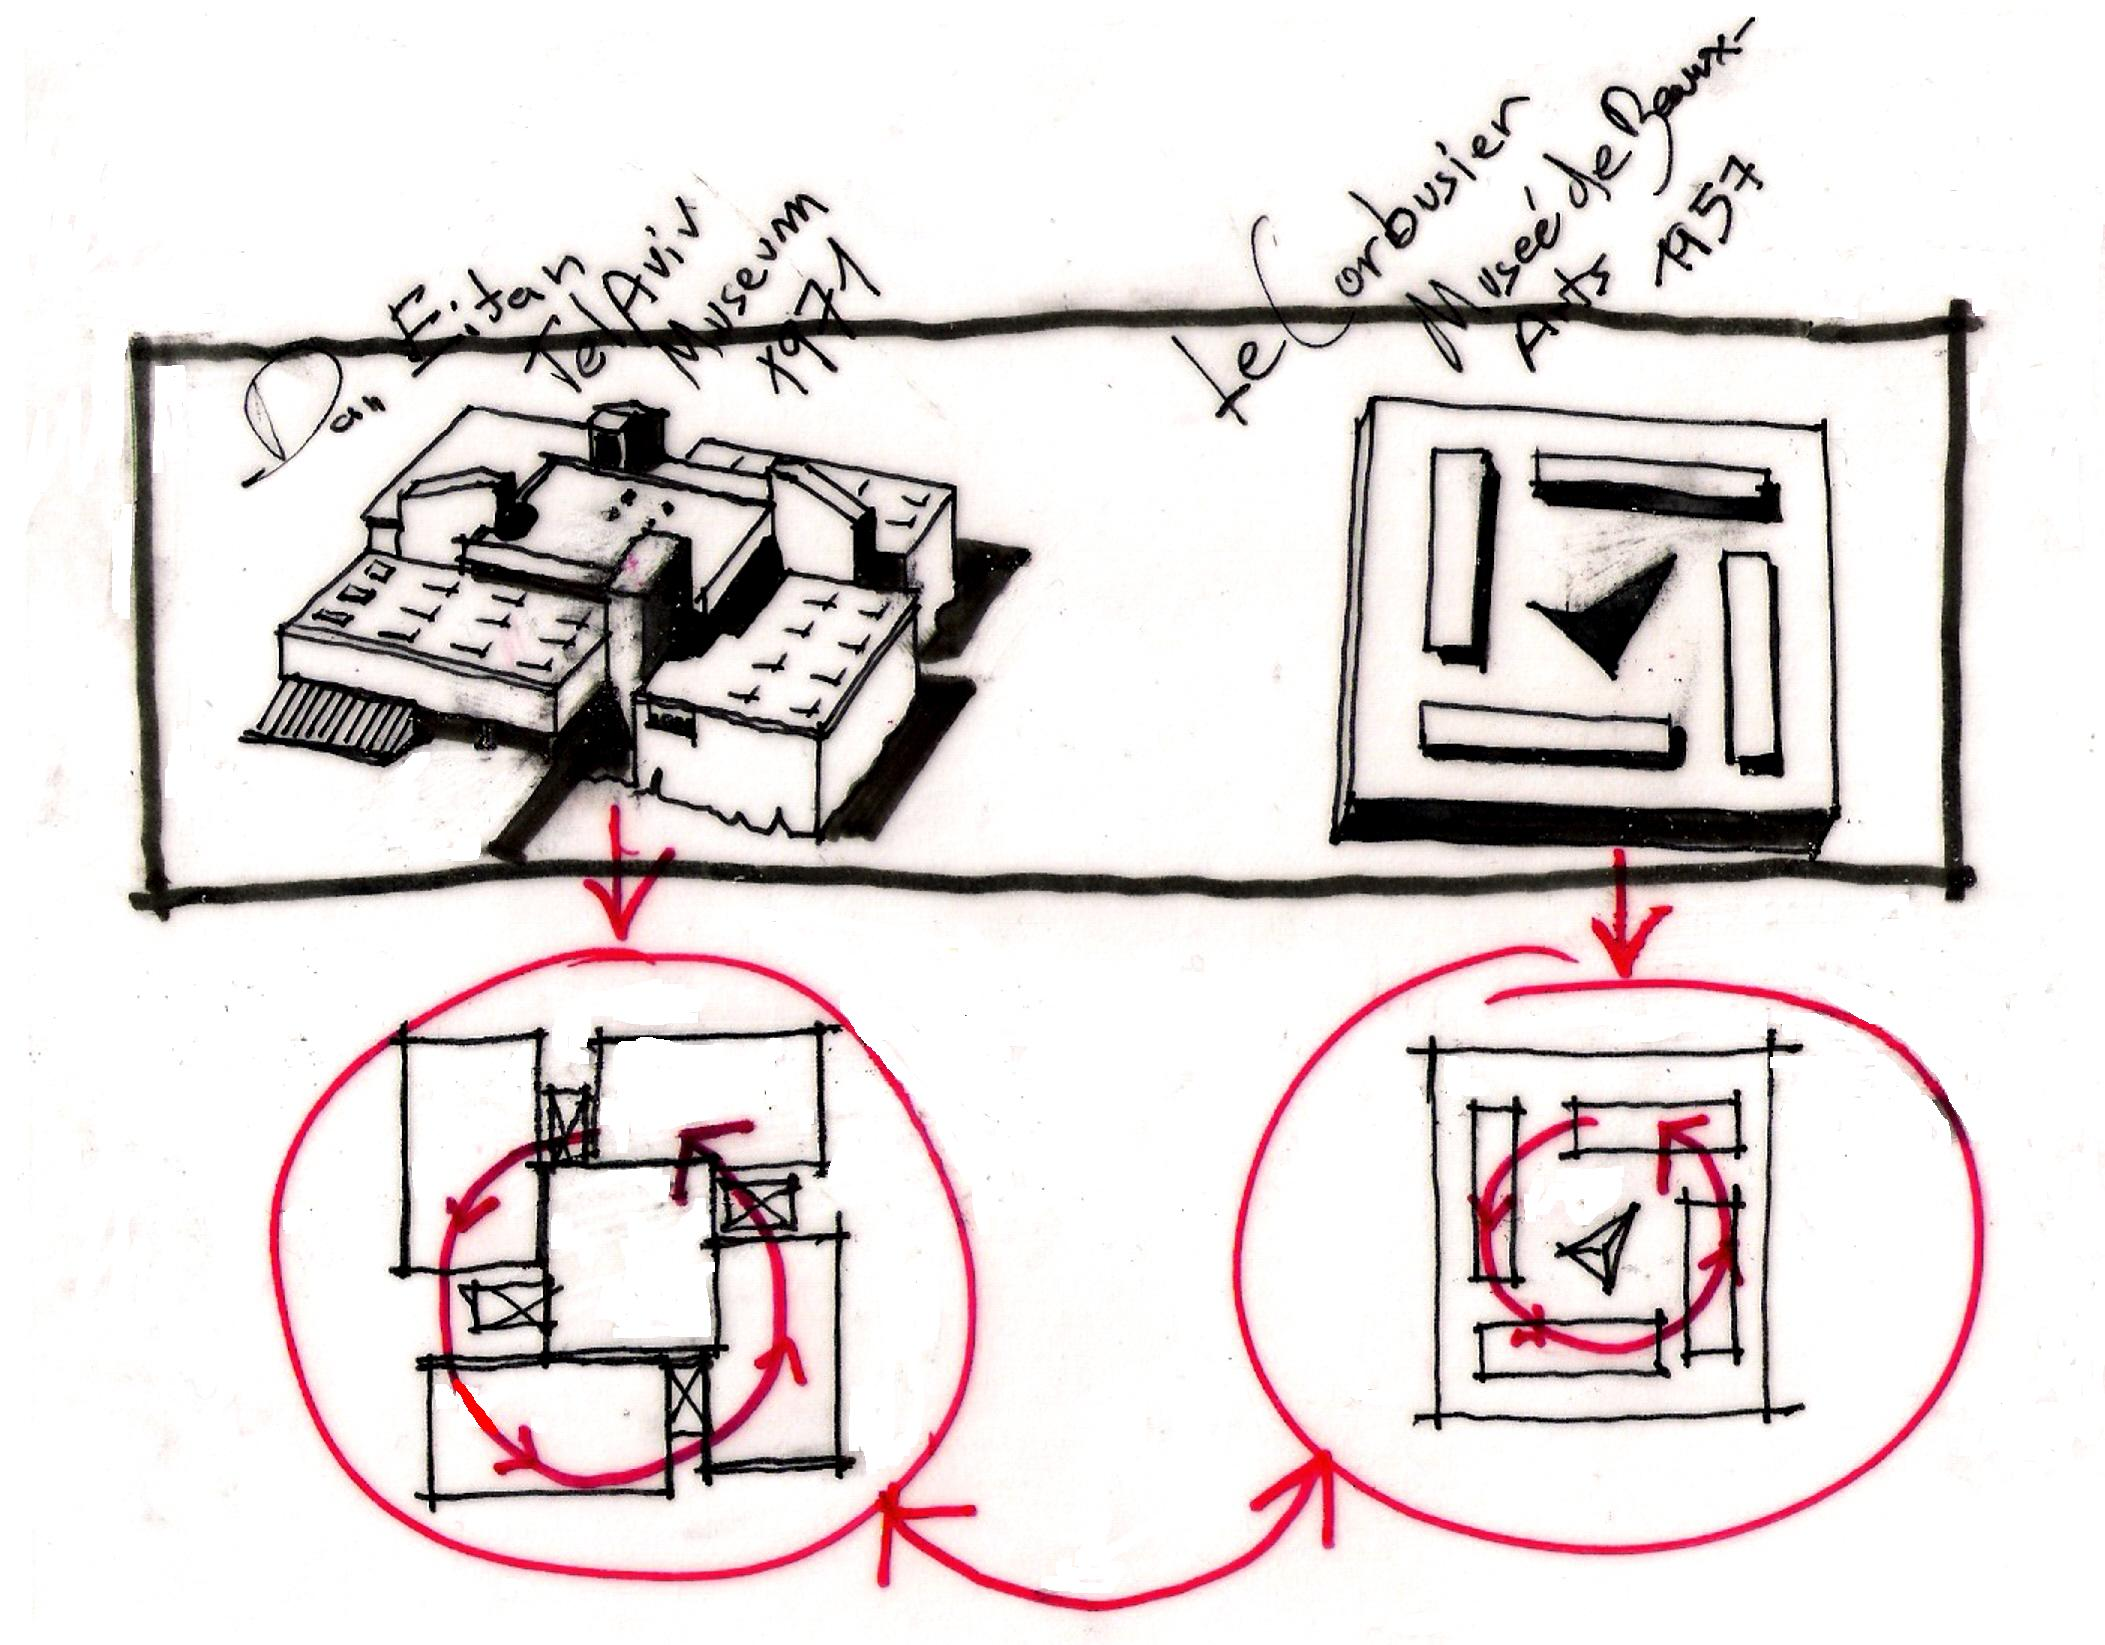 Book artistry research links drpoesmedia blog for 5 points corbusier